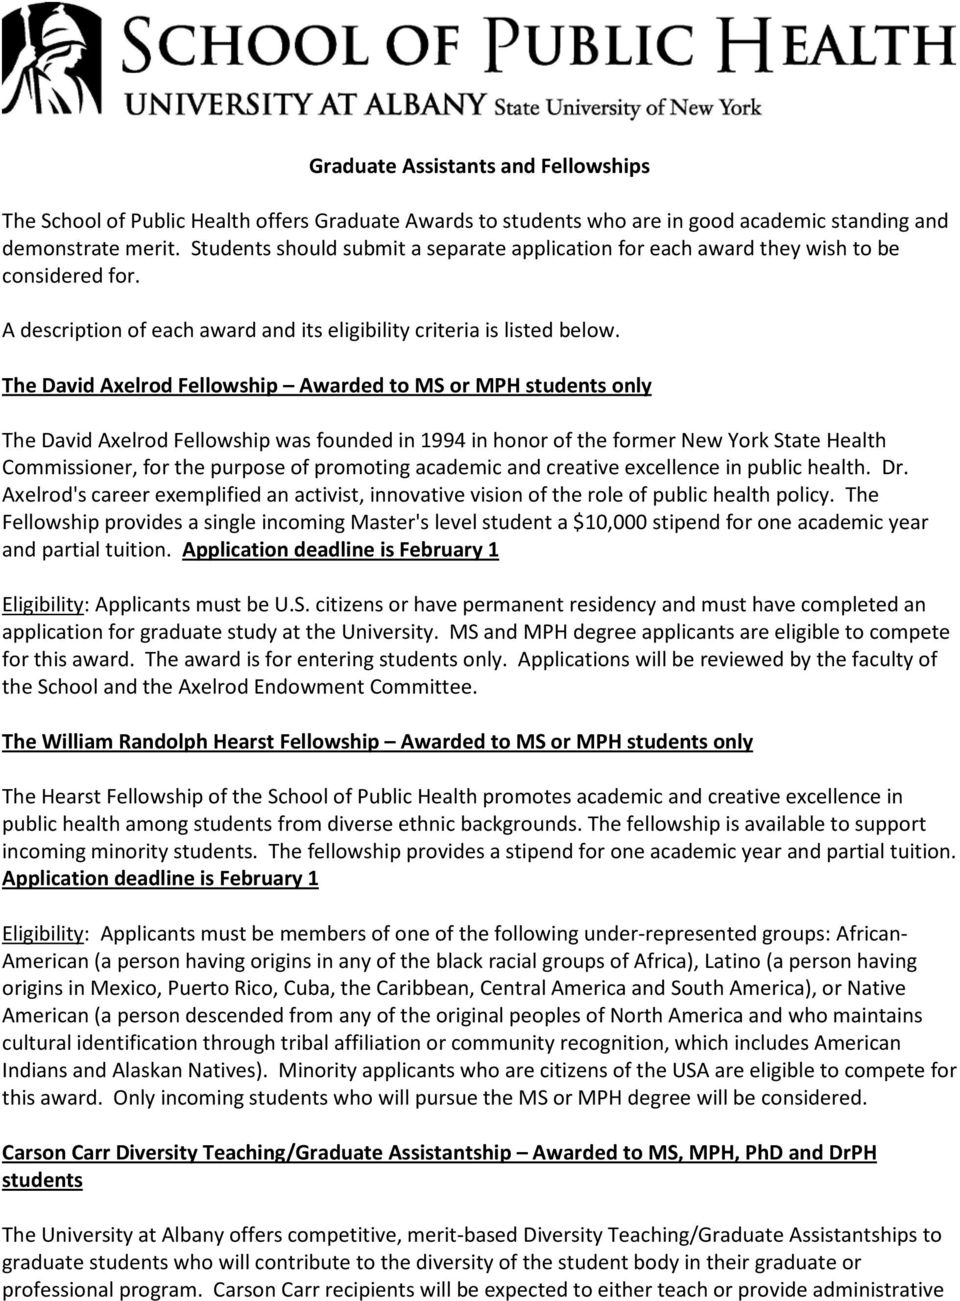 The David Axelrod Fellowship Awarded to MS or MPH students only The David Axelrod Fellowship was founded in 1994 in honor of the former New York State Health Commissioner, for the purpose of